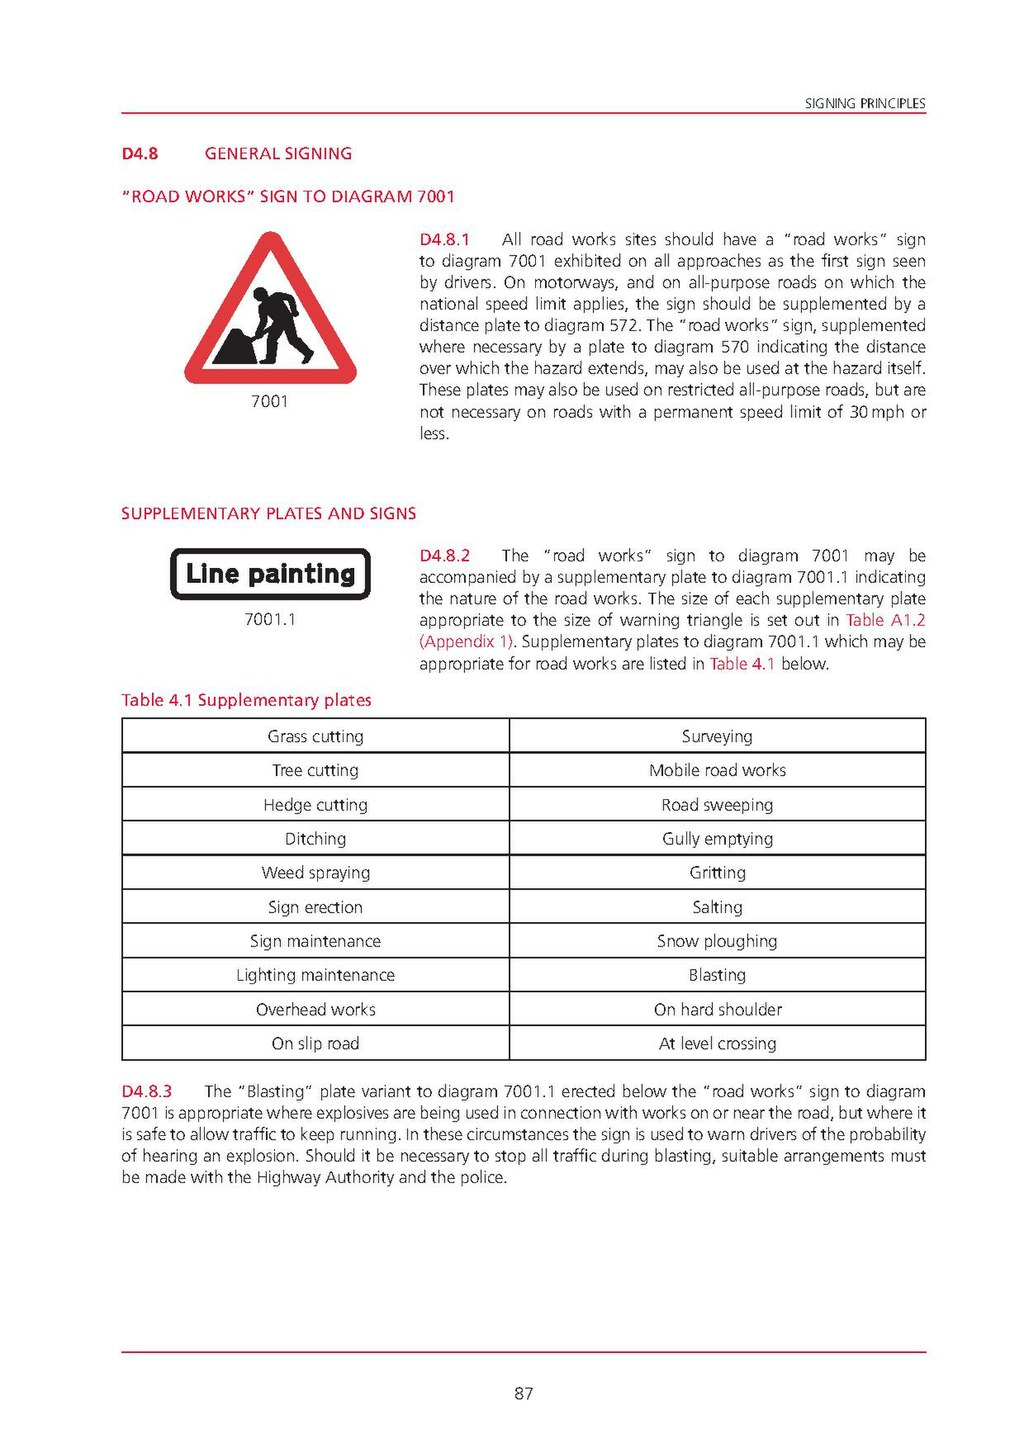 hight resolution of page uk traffic signs manual chapter 8 part 1 traffic safety measures and signs for road designs 2009 pdf 88 wikisource the free online library